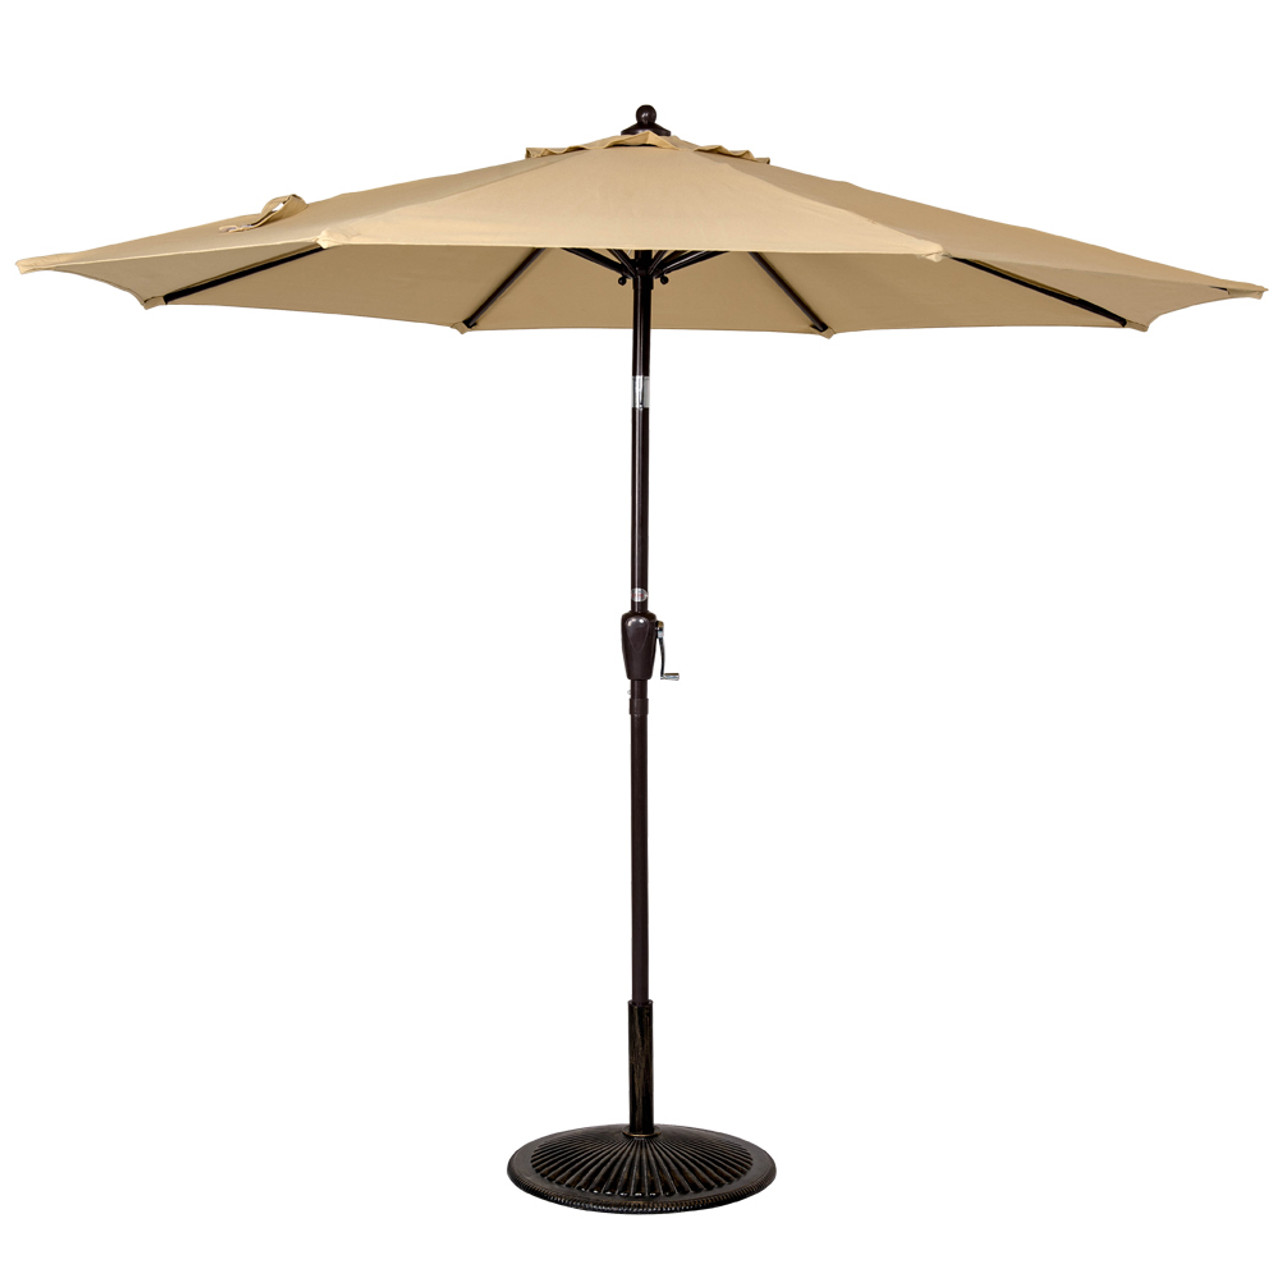 9 Ft Olefin Fabric Solution Dyed And UV Resistant Patio Garden Outdoor  Market Umbrella With Auto ...